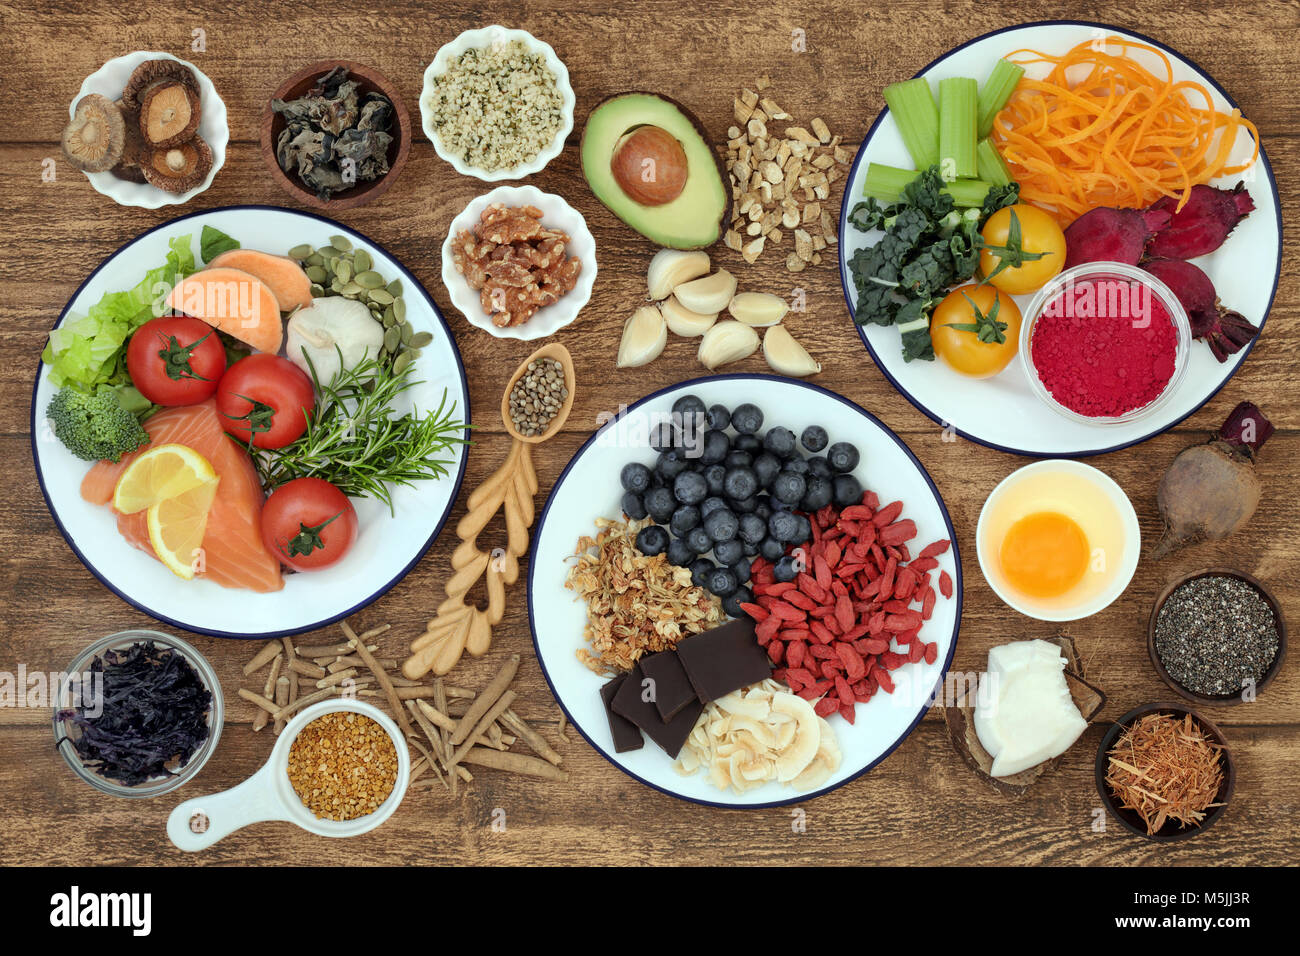 Healthy super food with health promoting properties to sharpen brain power and promote memory with food high in - Stock Image